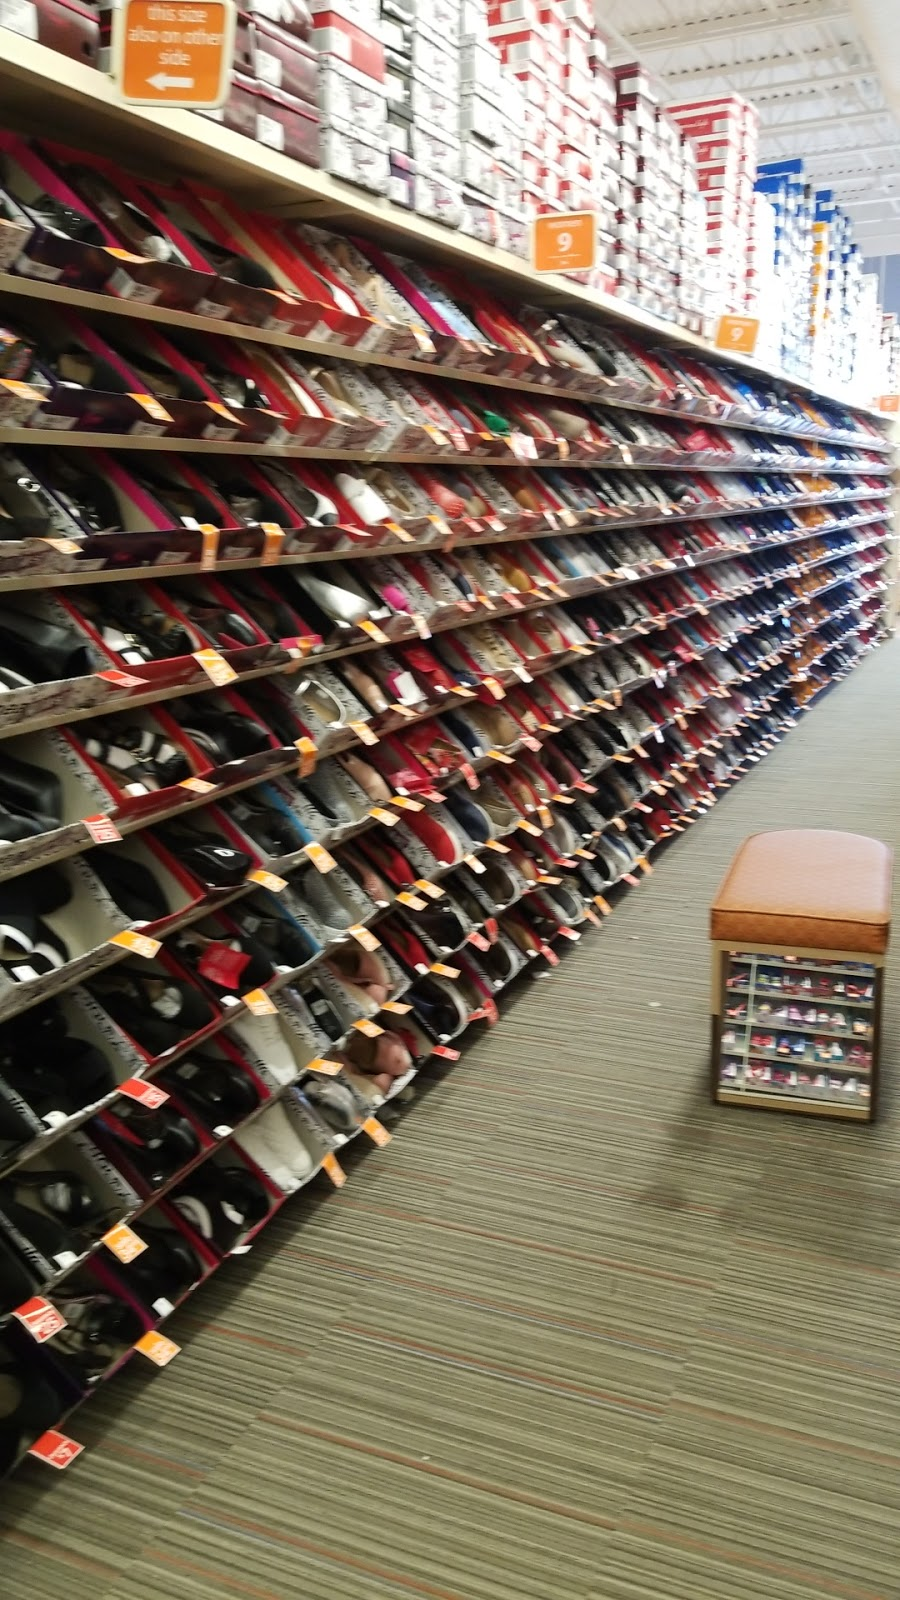 Payless ShoeSource | shoe store | 1400 Ottawa St S Ste A6, Kitchener, ON N2E 4E2, Canada | 5195687559 OR +1 519-568-7559